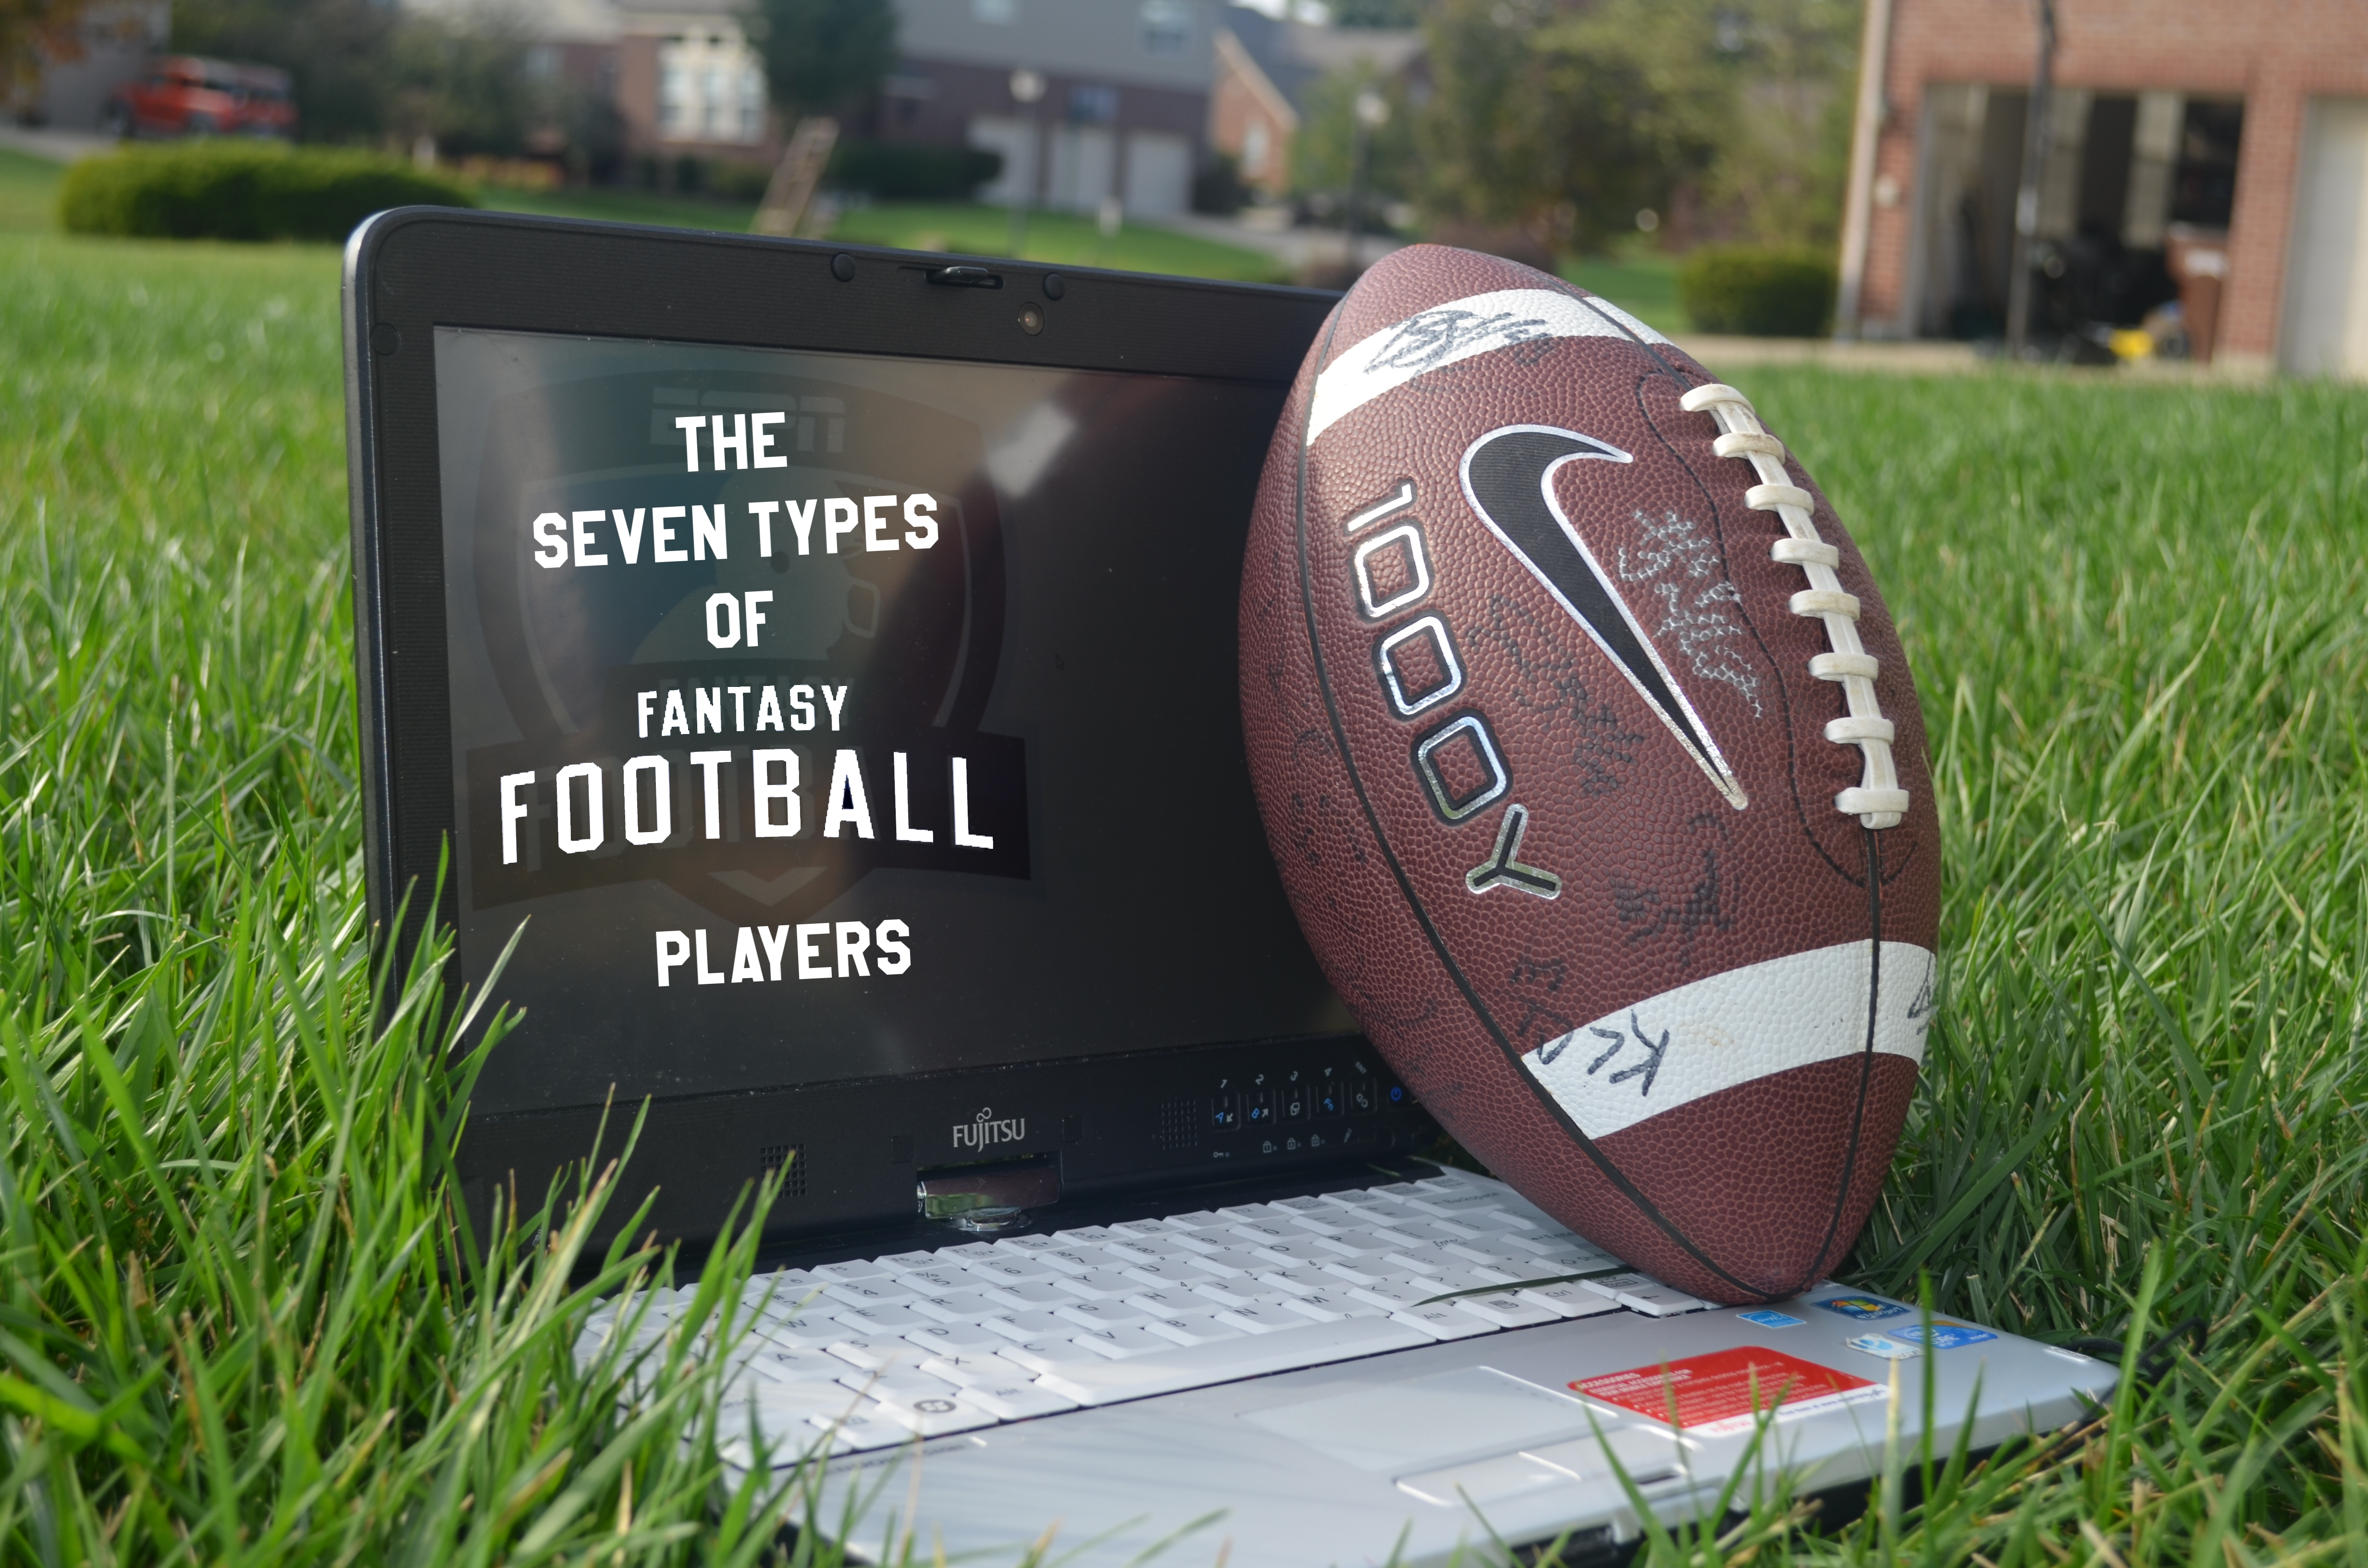 The Seven Types of Fantasy Football Players